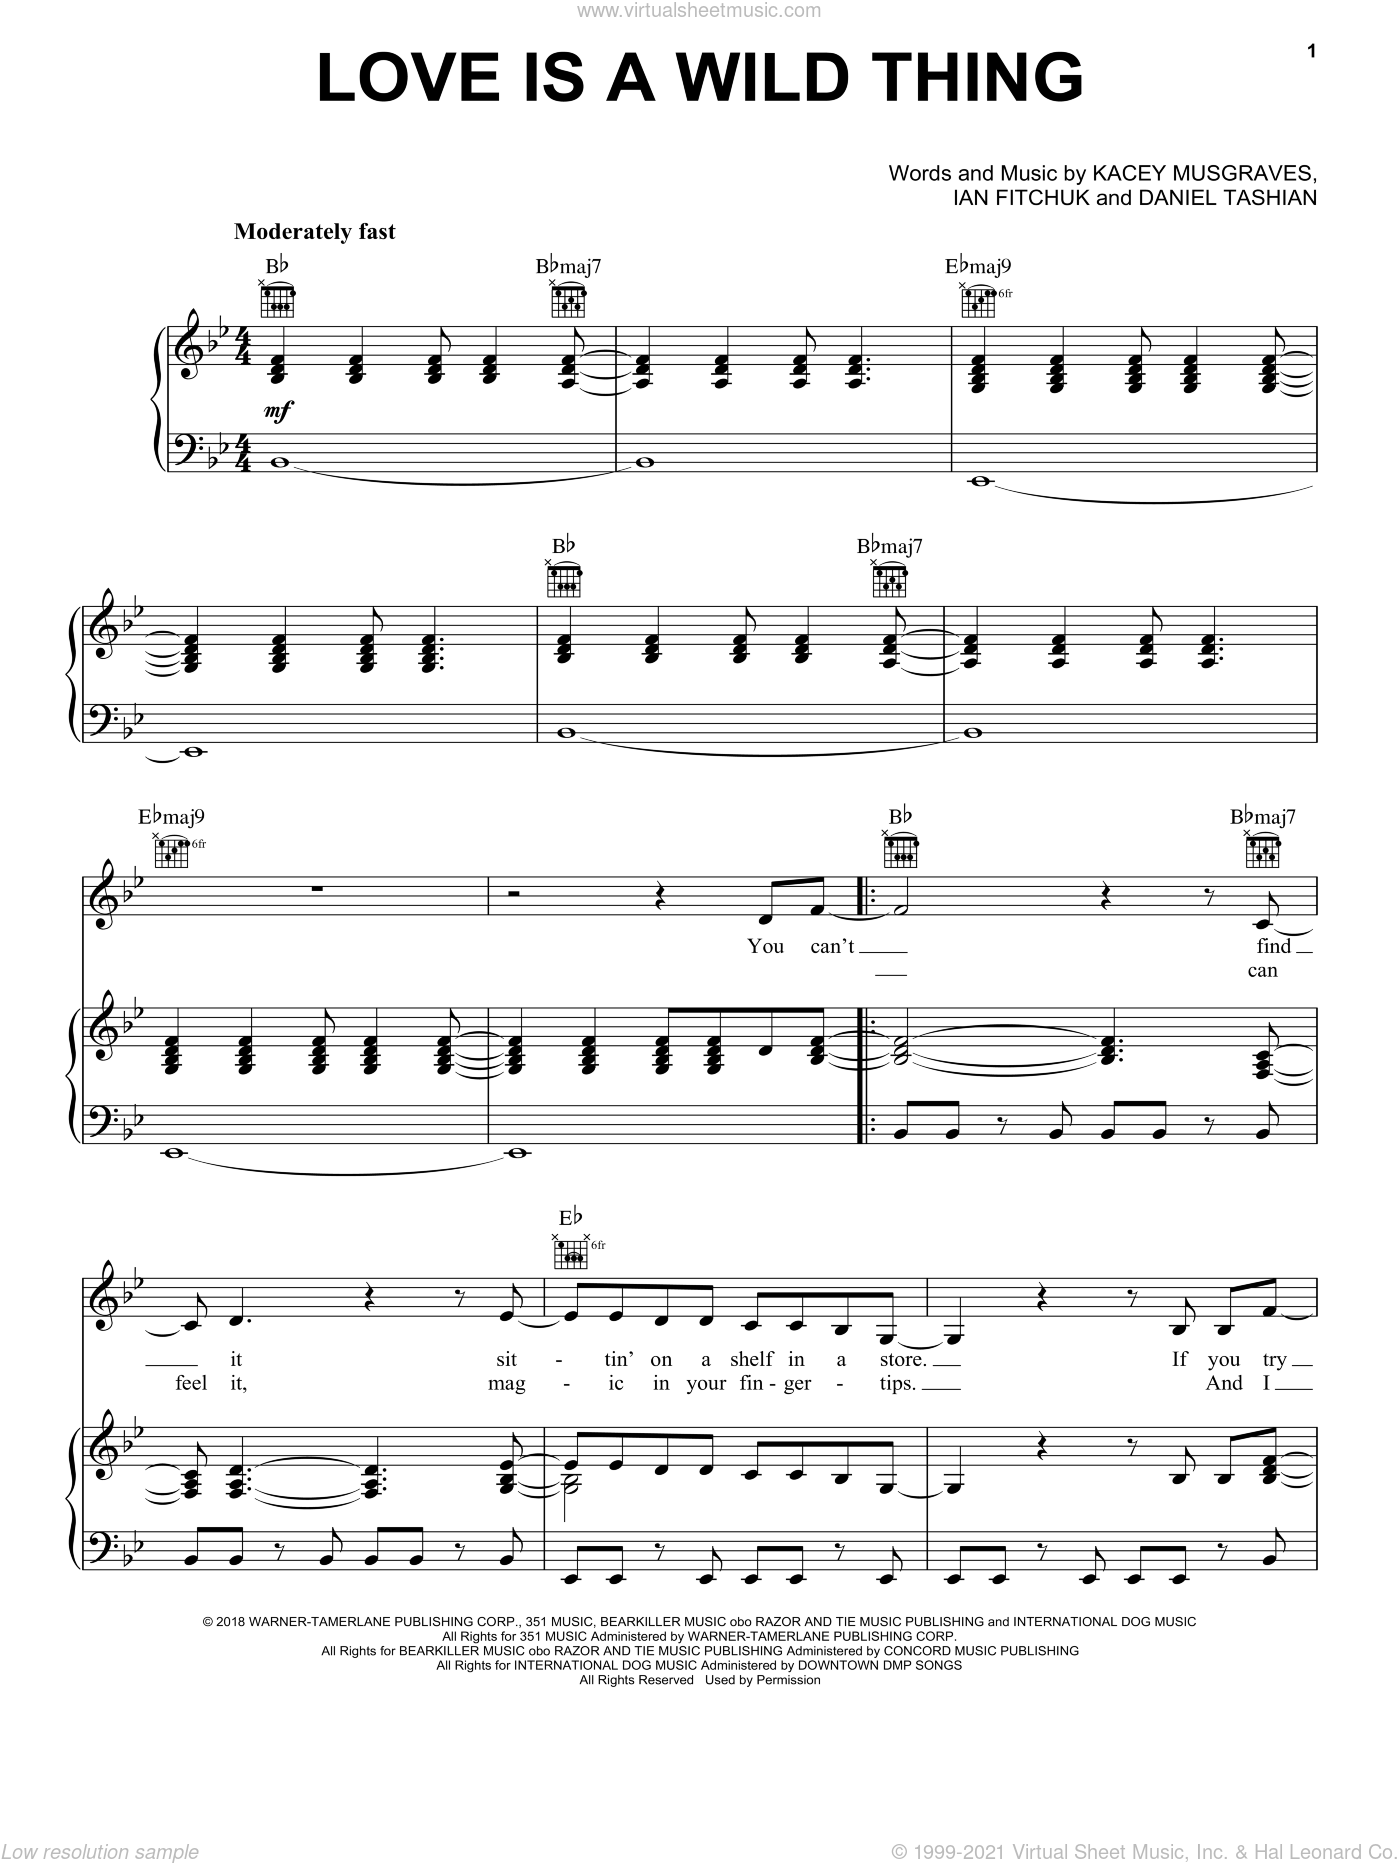 Love Is A Wild Thing sheet music for voice, piano or guitar by Kacey Musgraves, Daniel Tashian and Ian Fitchuk, intermediate skill level